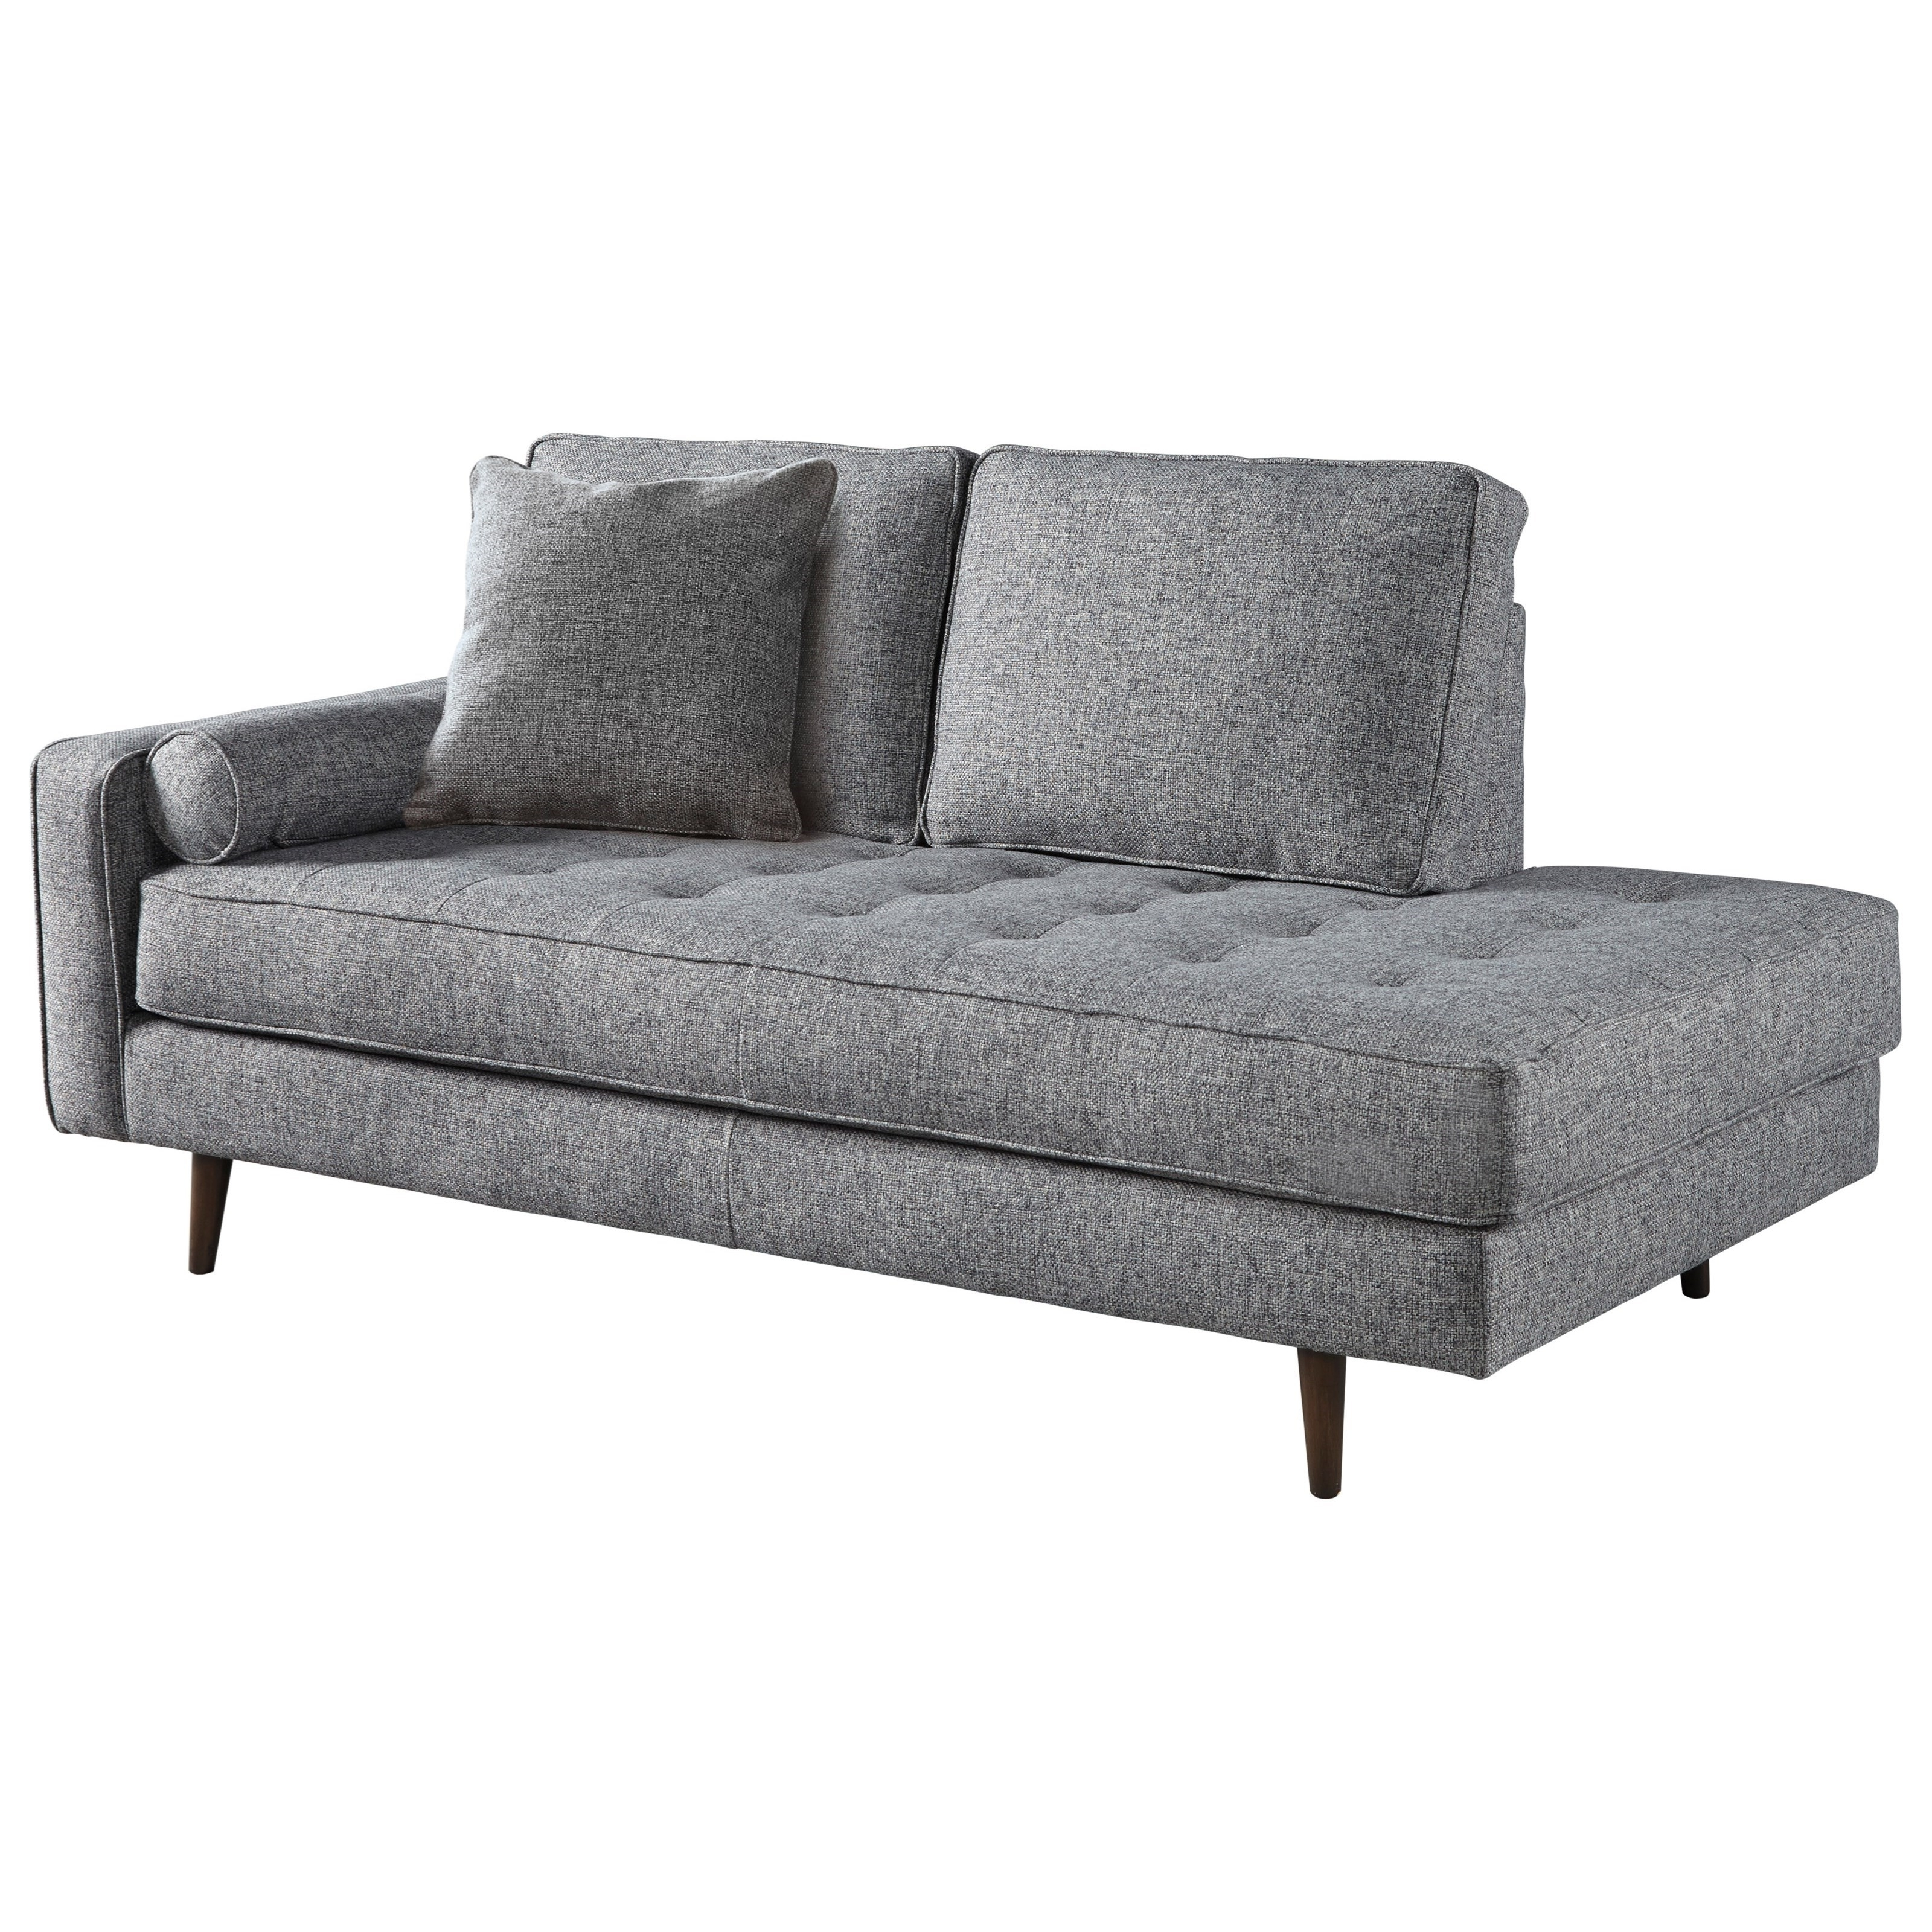 Current Ashley Chaise Lounges For Shop Chaise Lounges (View 5 of 15)